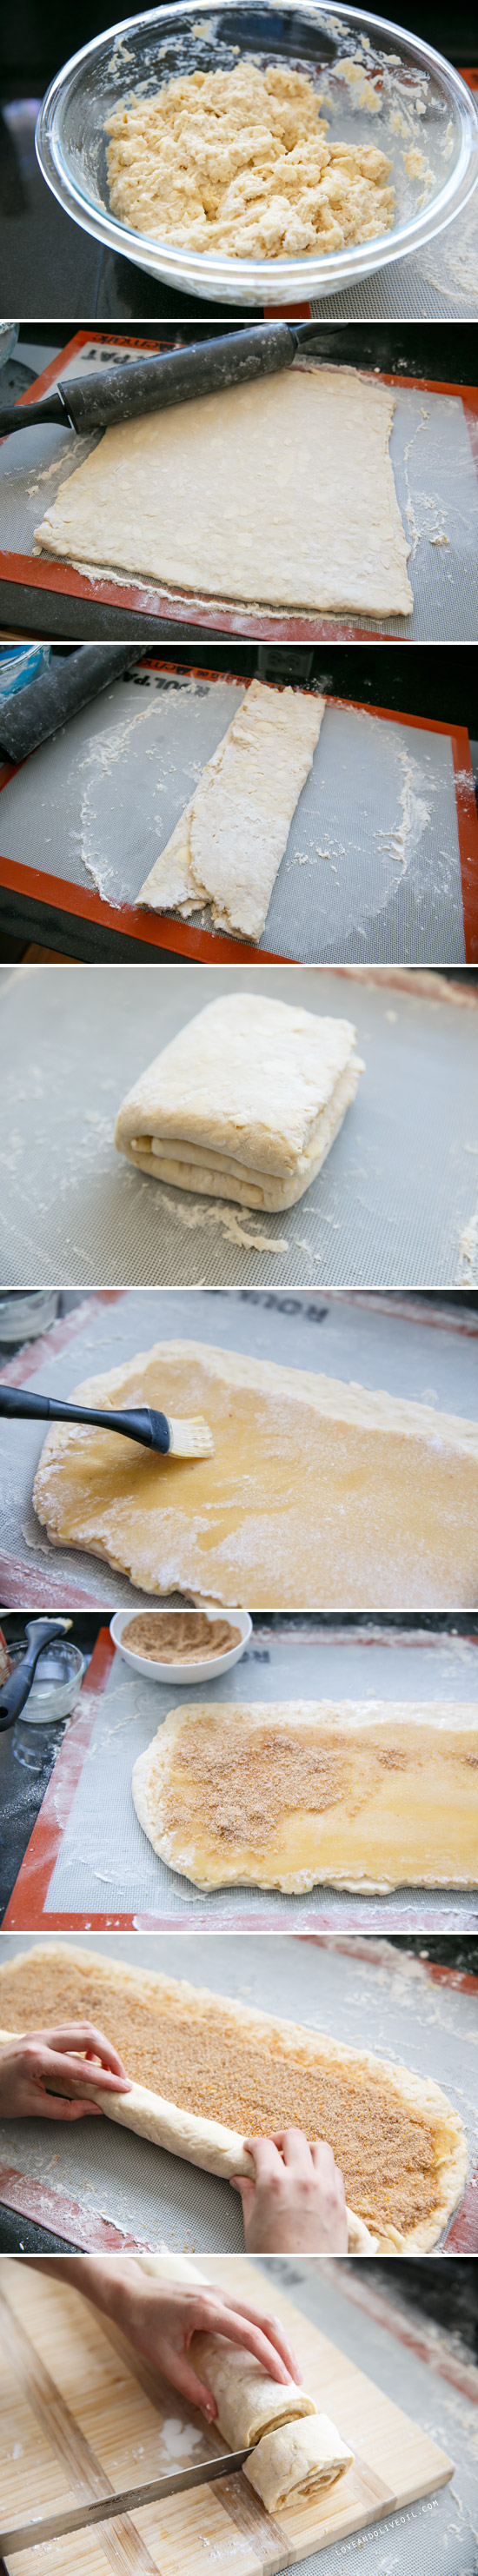 Homemade Morning Buns with Quick Processor Pastry Dough